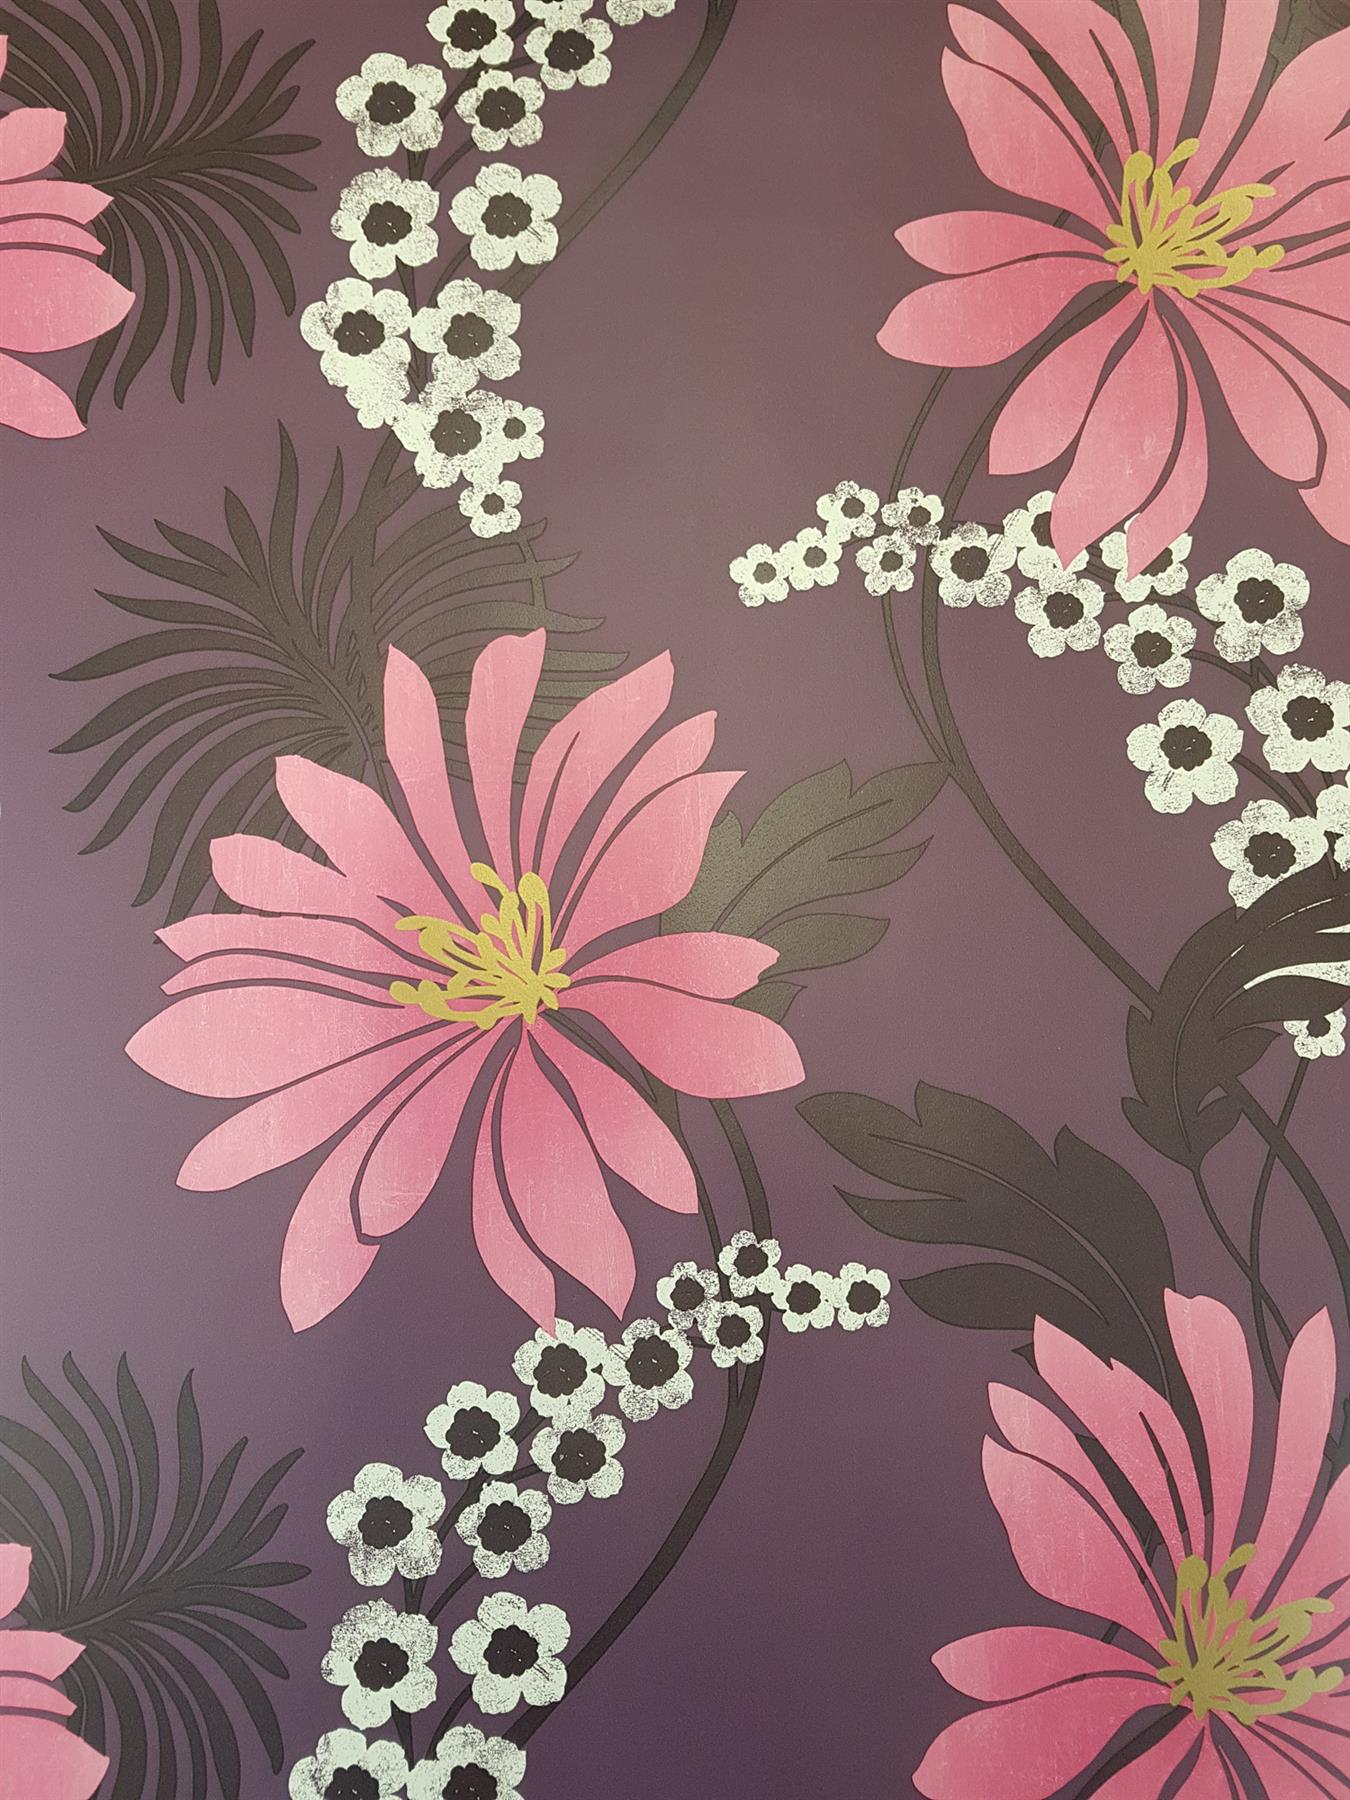 Details About Purple Plum Floral Wallpaper Pink White Flowers Gold Metallic Feature Holden